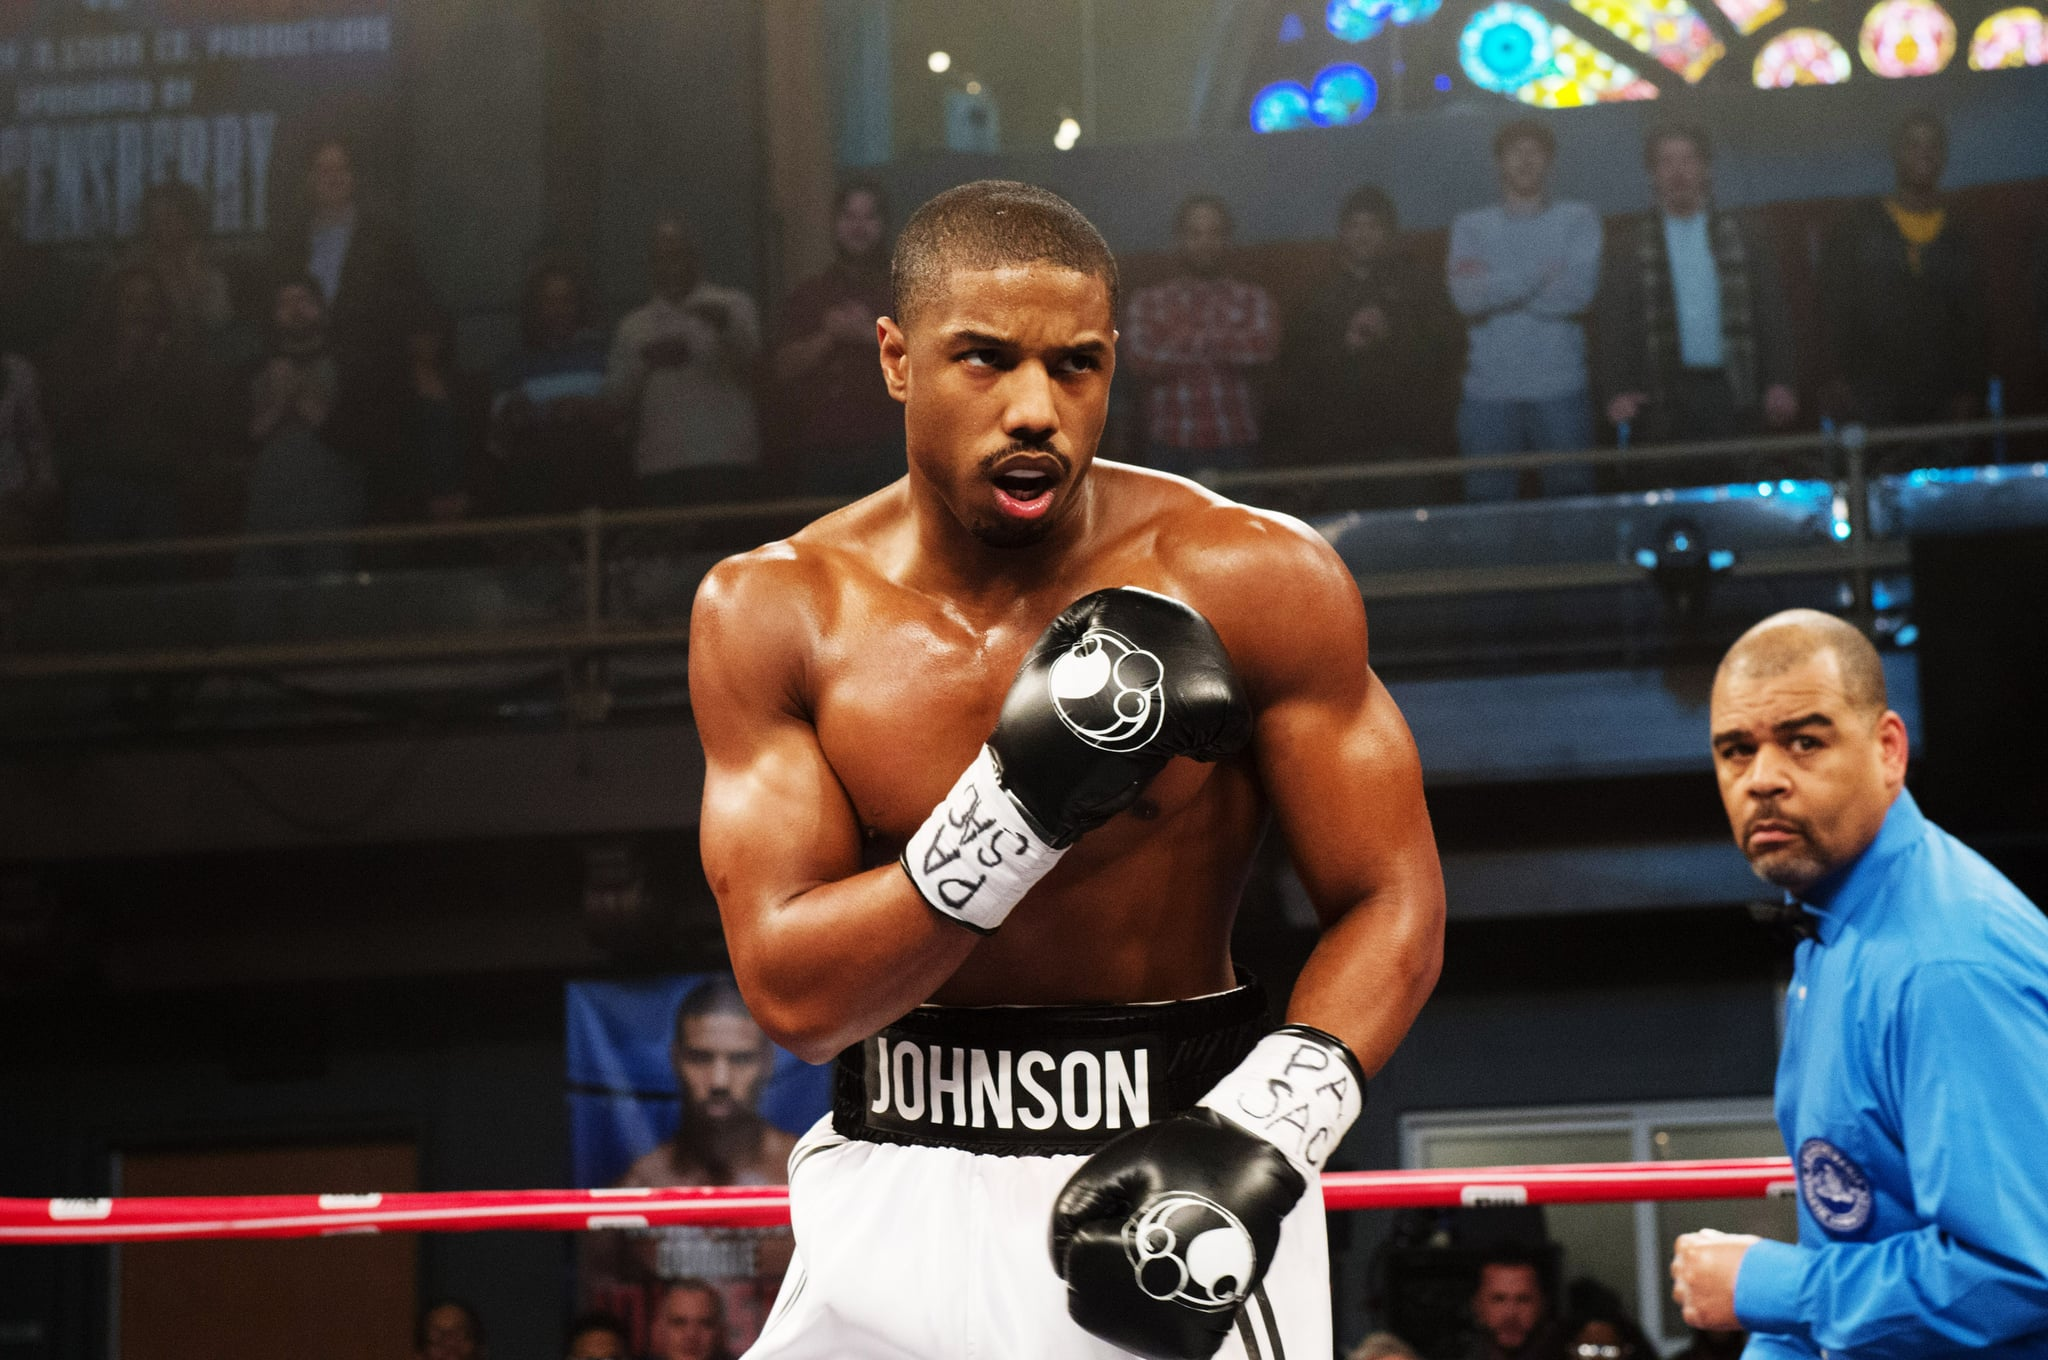 CREED, Michael B. Jordan, 2015. ph: Barry Wetcher/Warner Bros./Courtesy Everett Collection